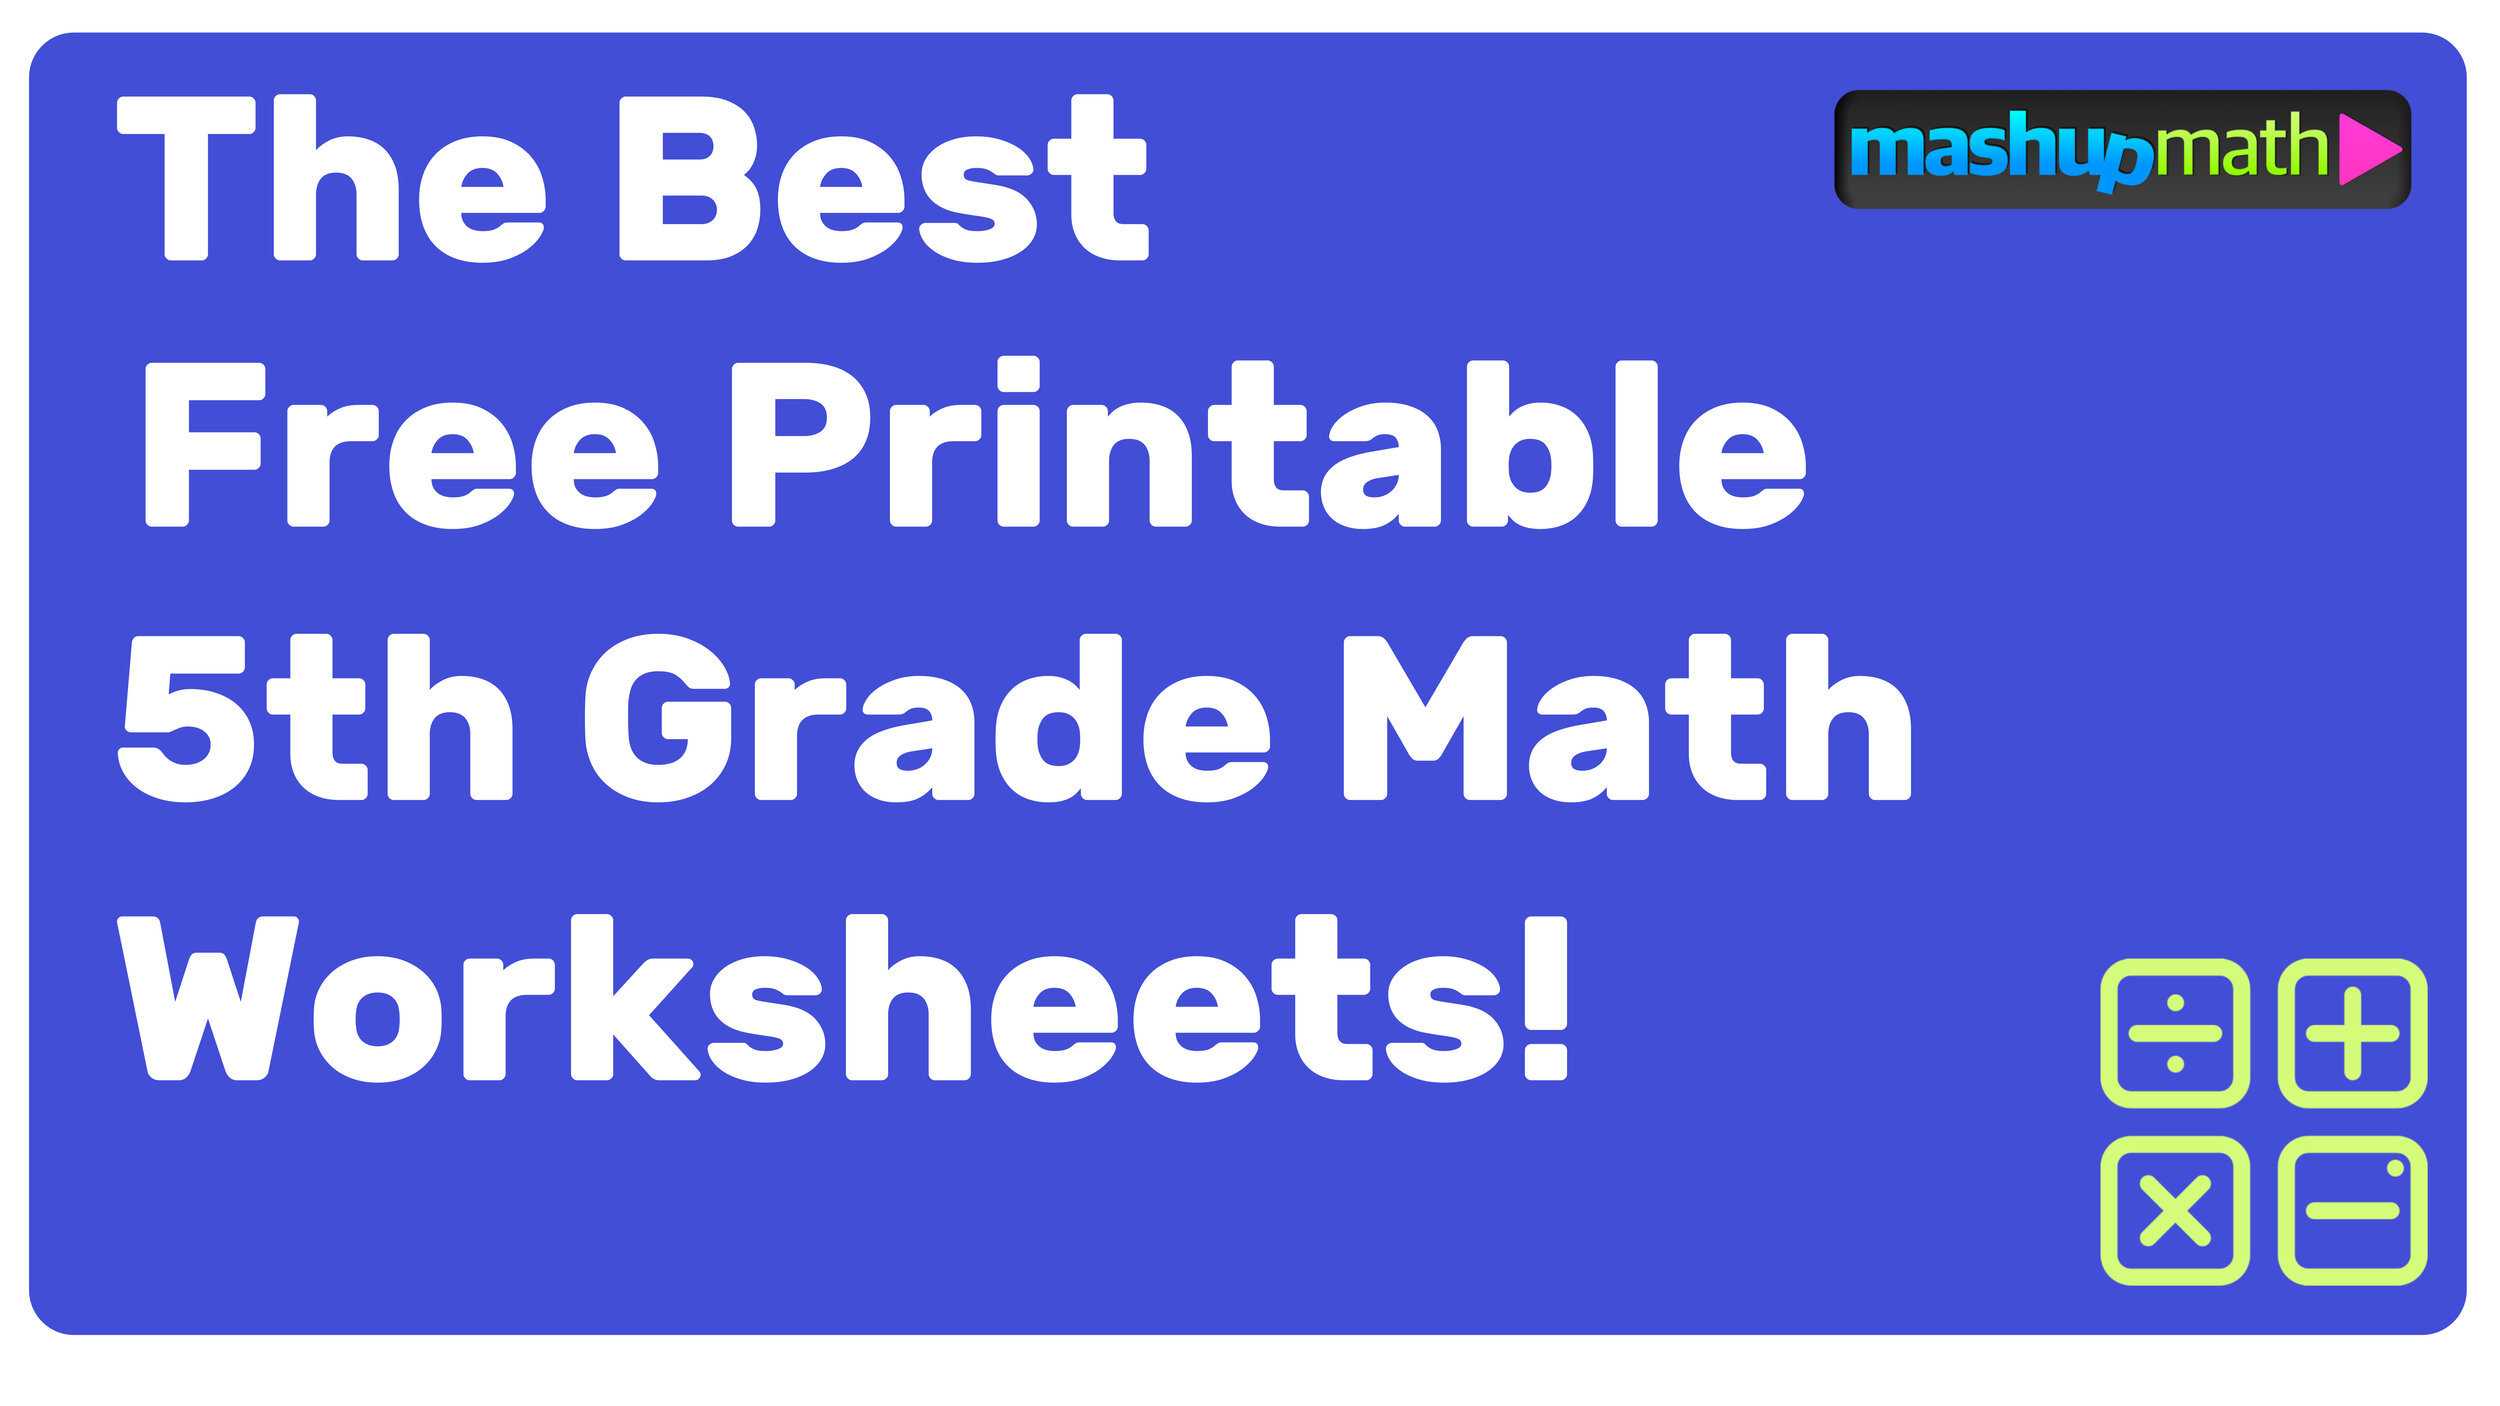 Free Printable 5th Grade Math Worksheets (with Answers!) — Mashup Math